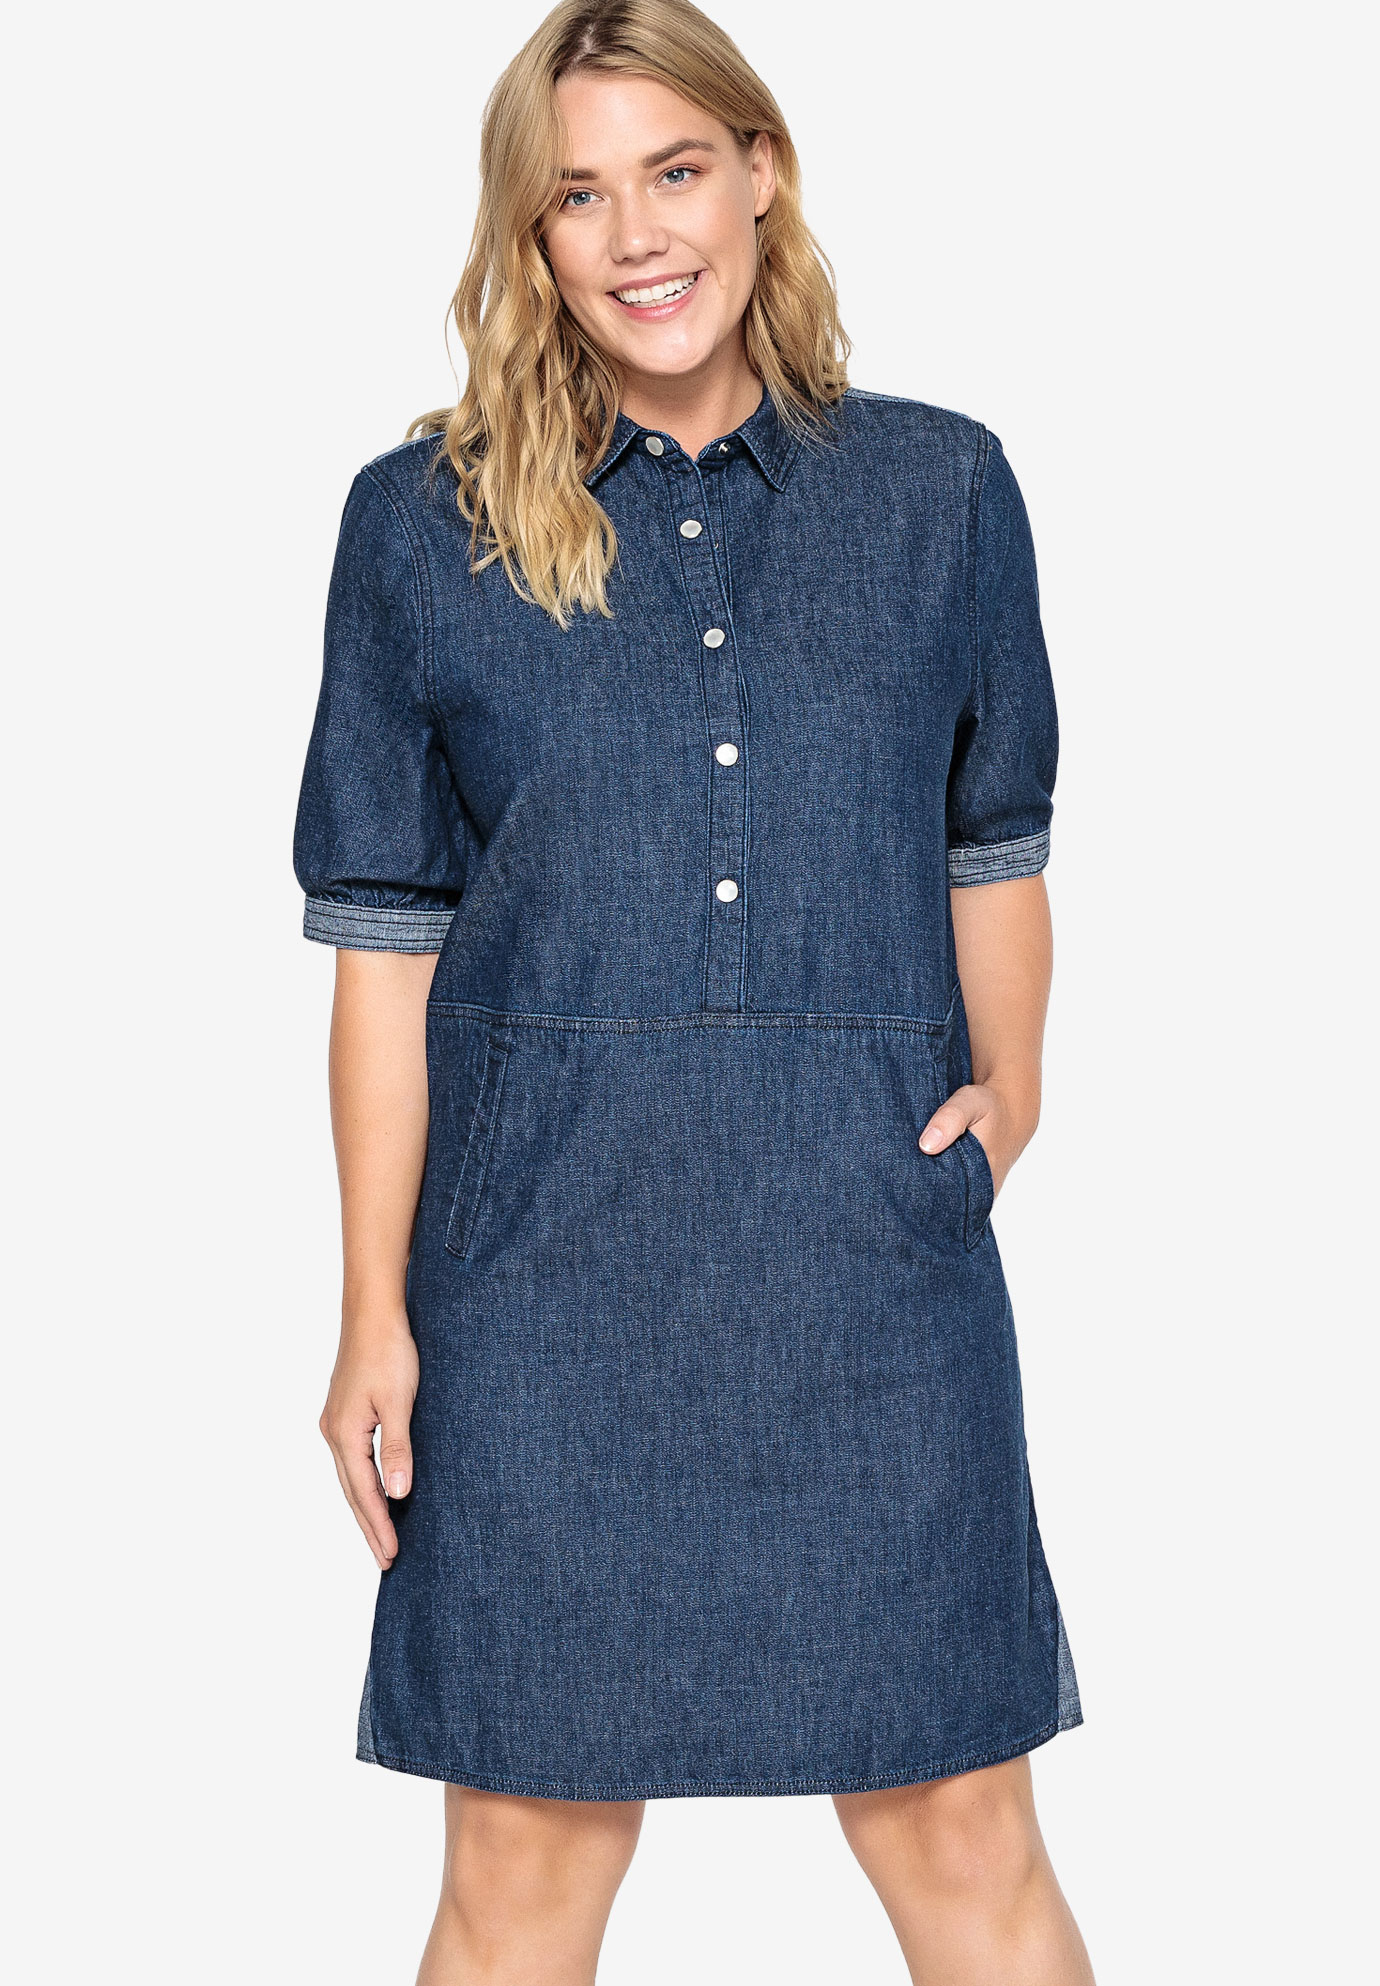 Denim Snap Front Shirtdress Castaluna by La Redoute,